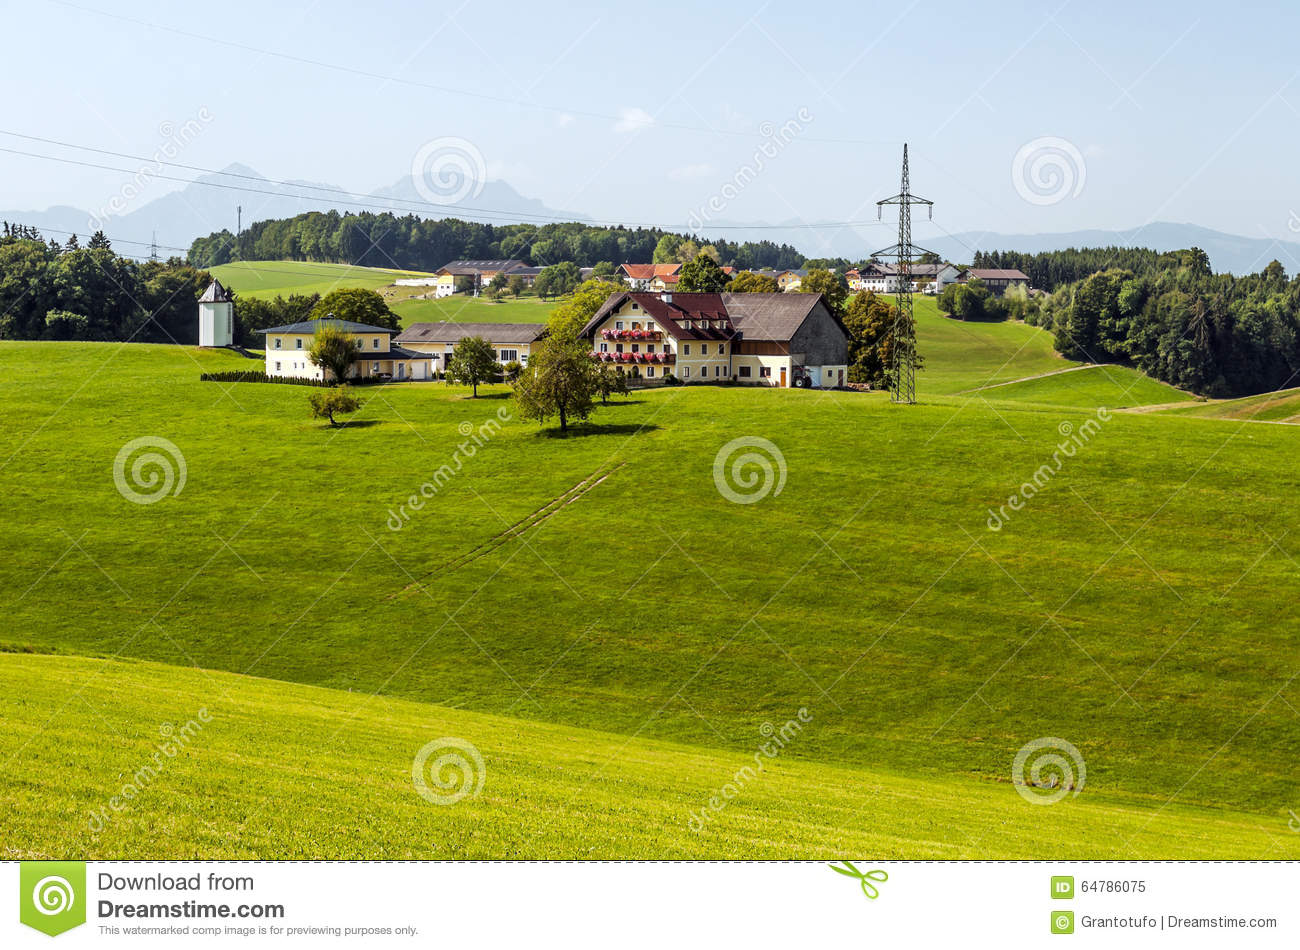 Houses surrounded by meadows